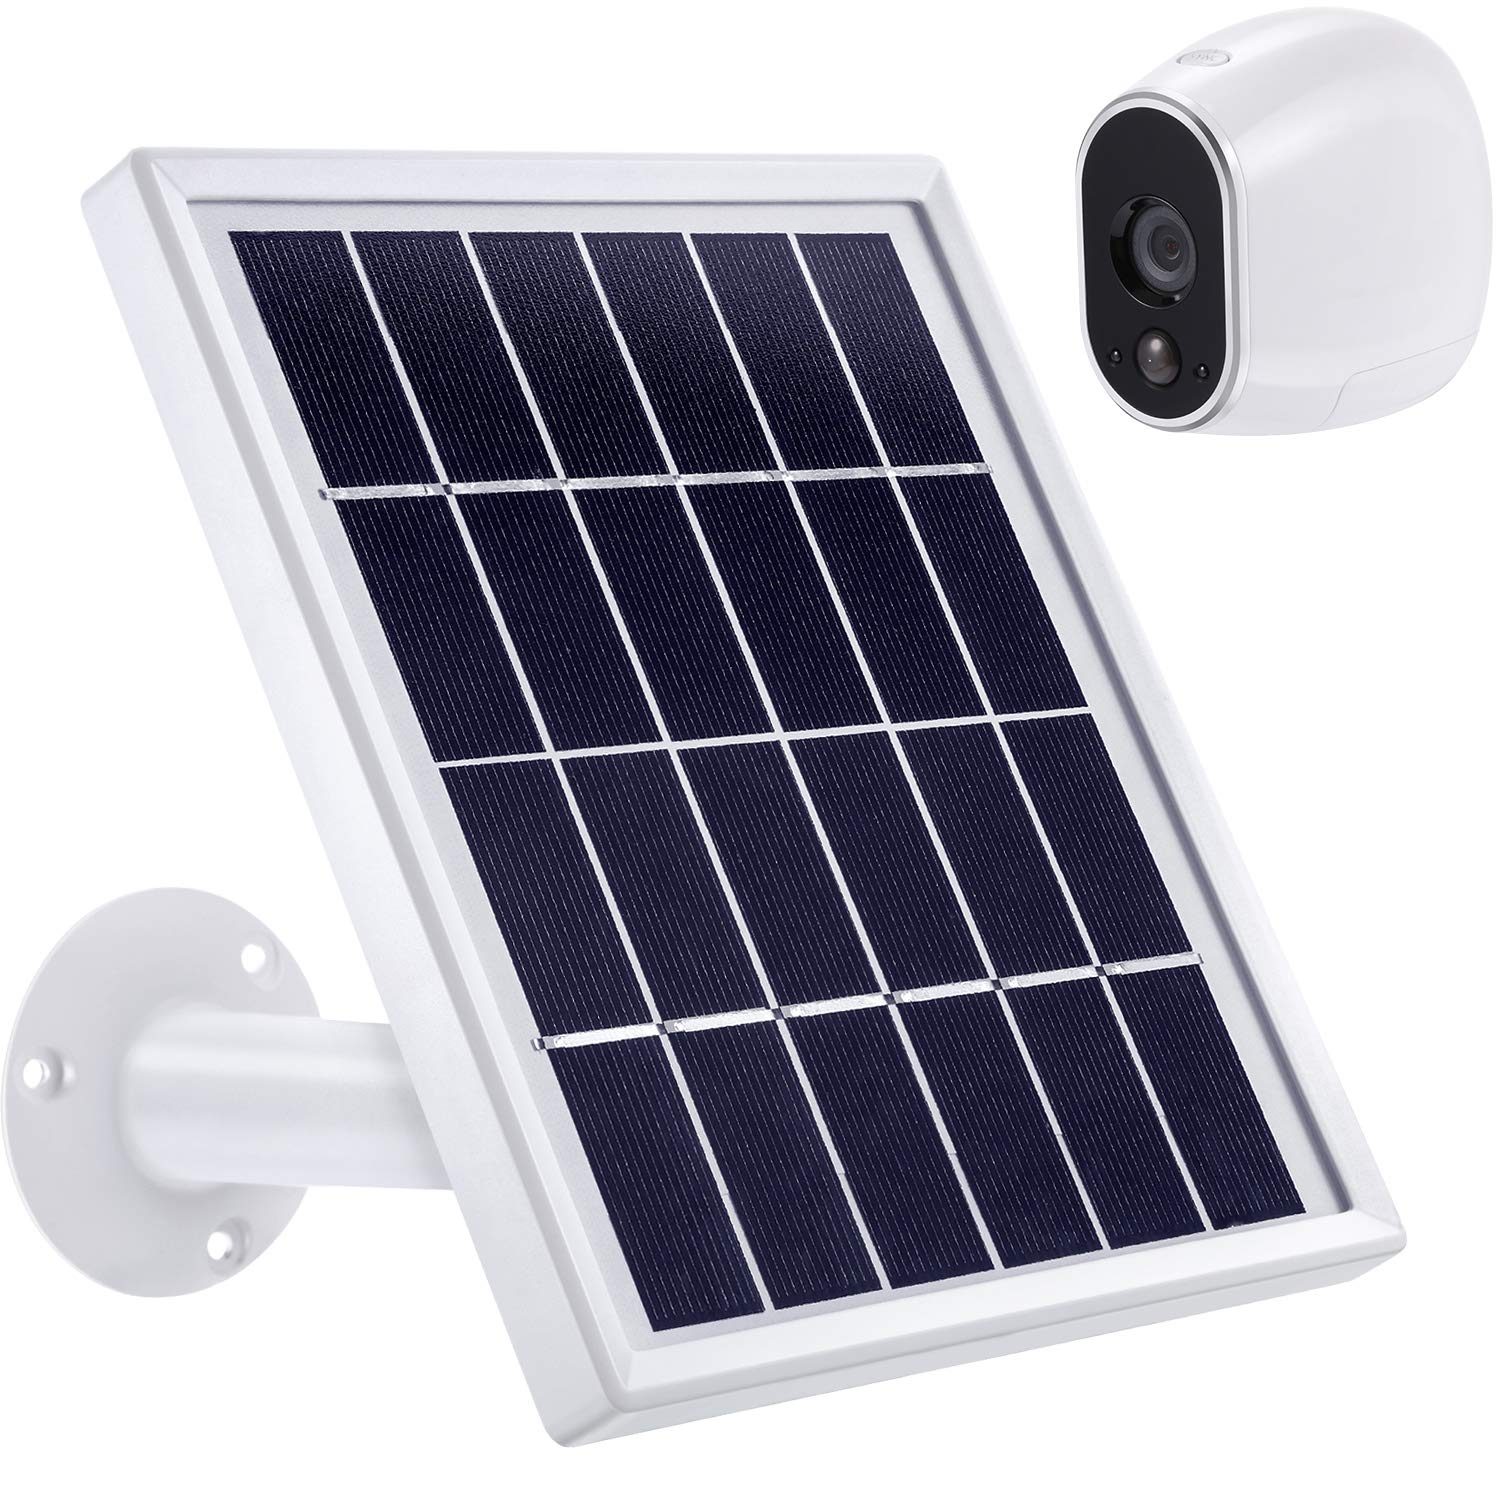 Solar Panel Compatible with Arlo HD, Power Arlo HD Outdoor Camera Continuously with Adjustable Mount, 12 Feet/ 3.6 m Waterproof Cable and Micro USB Connector, Charging with Arlo HD No More Batteries by Blulu